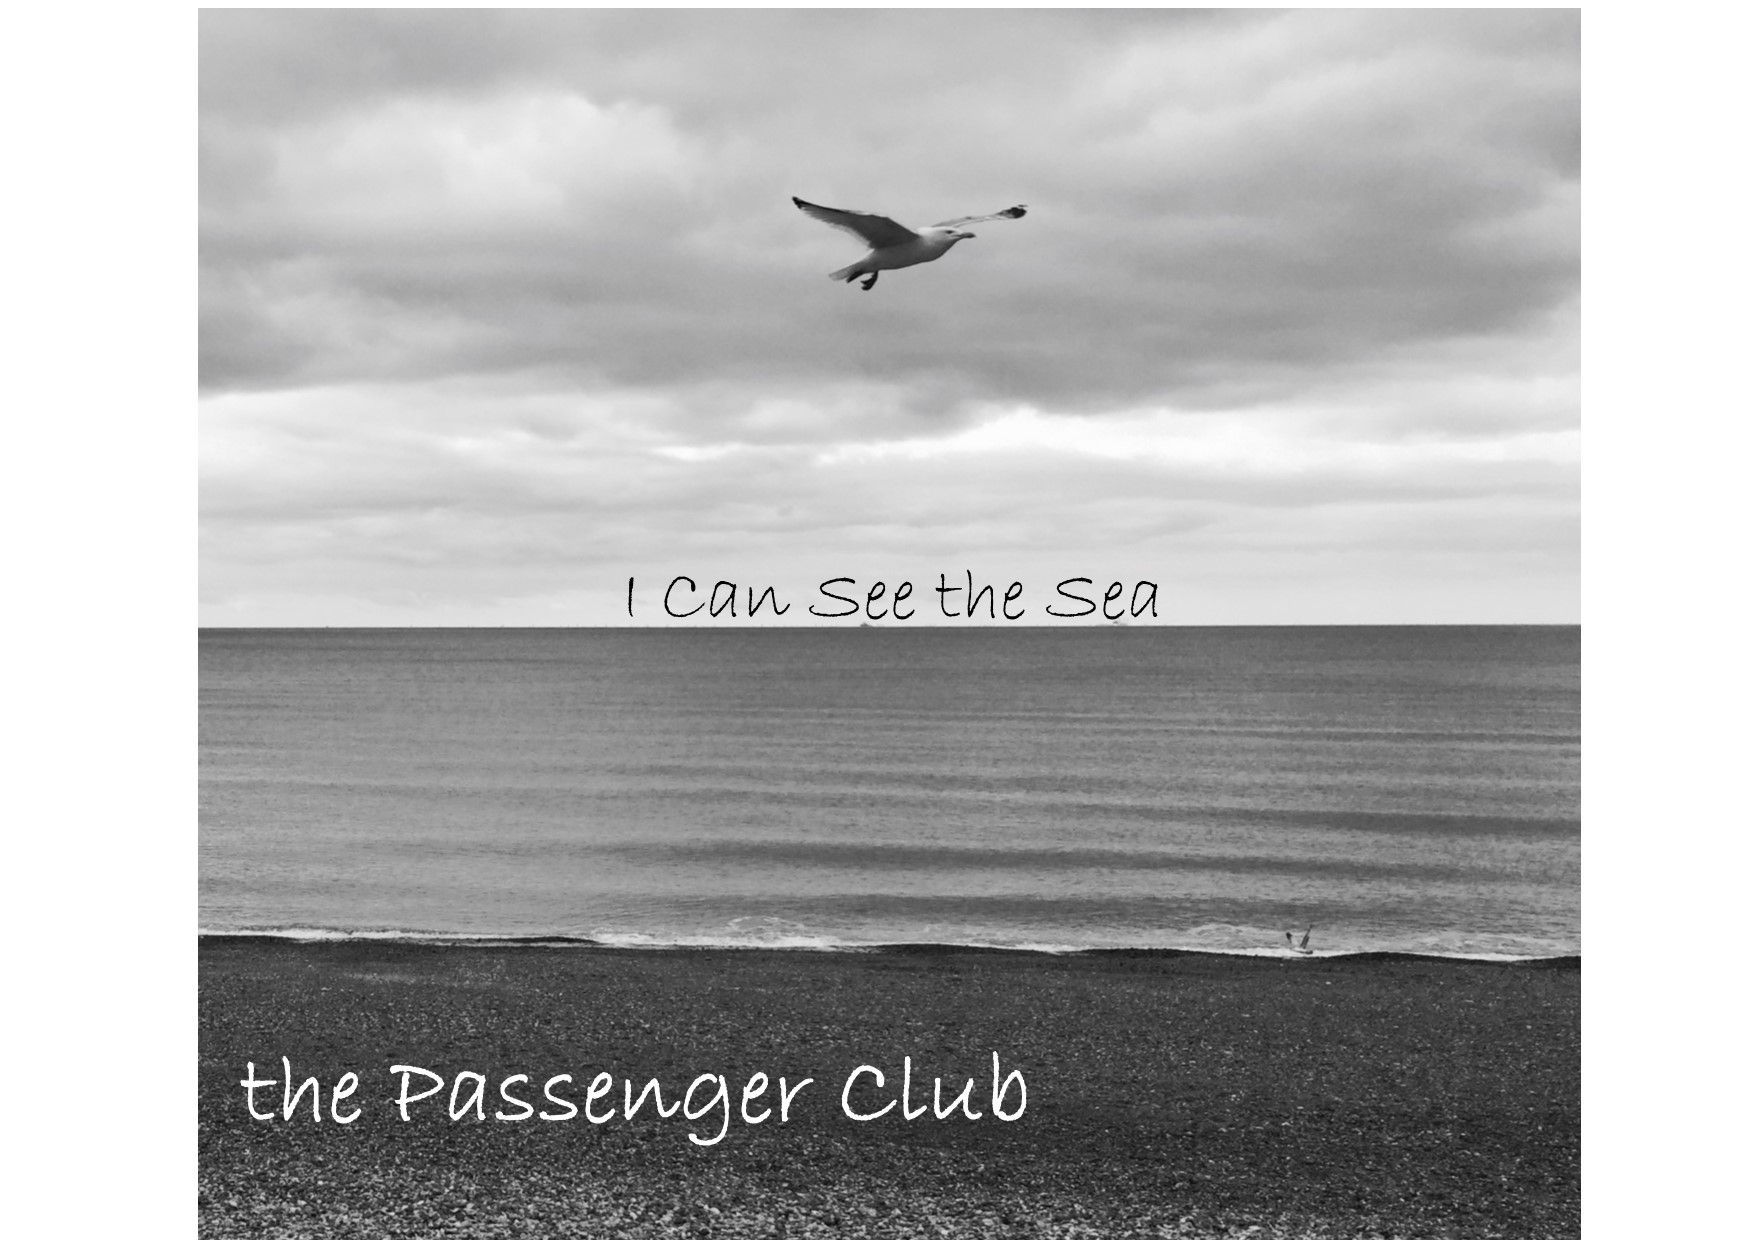 the Passenger Club debut album I Can See the Sea